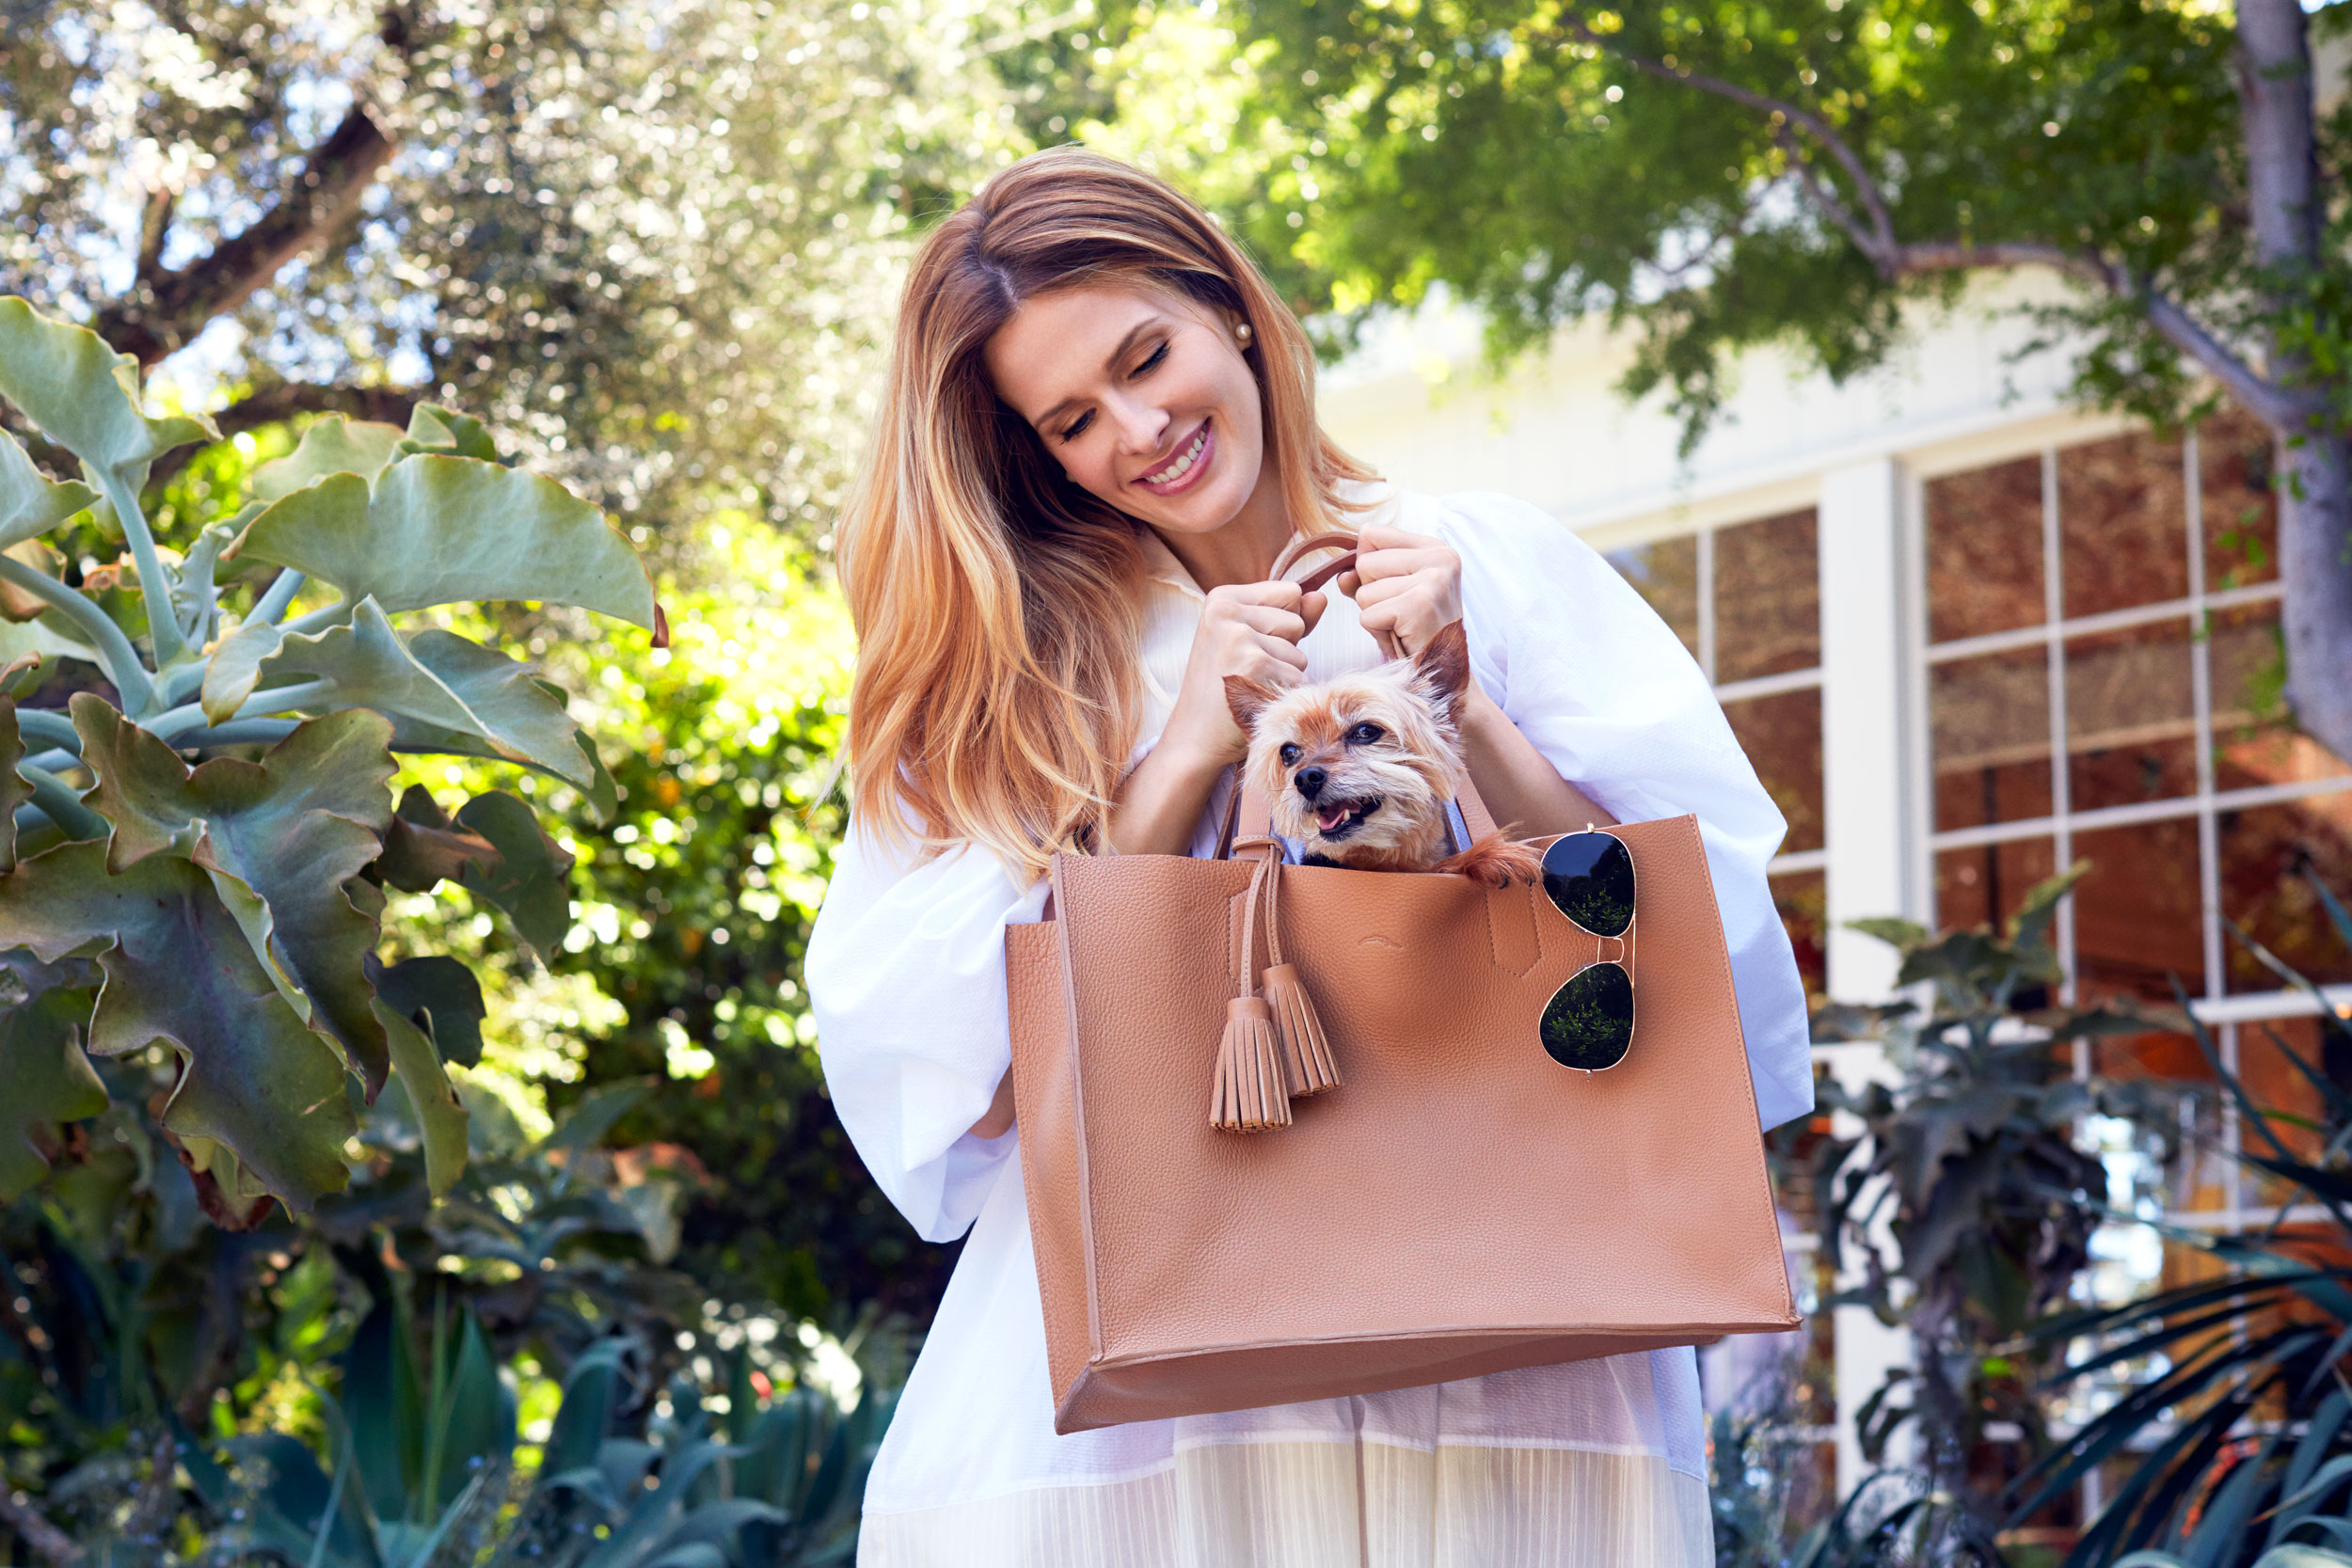 Woman in a white dress carrying her puppy in her purse. Kim Genevieve Los Angeles Portrait Photographer